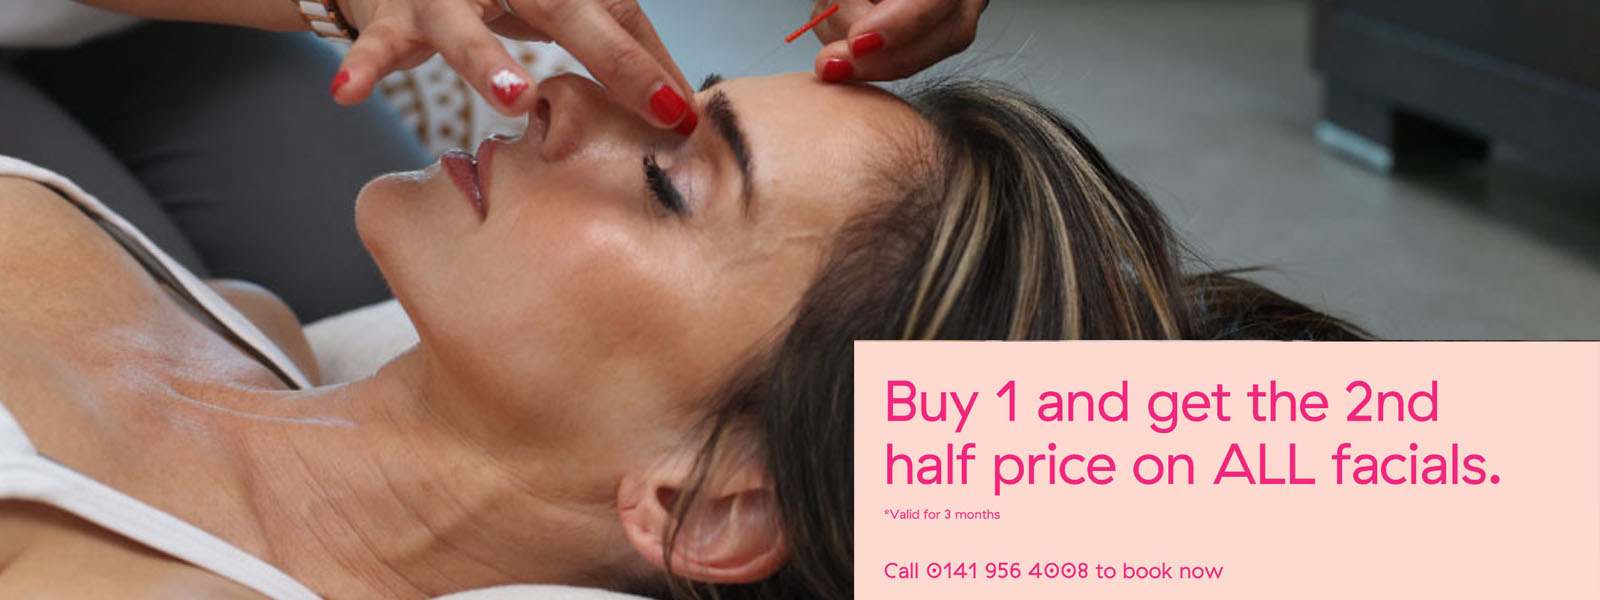 Body and Mind Buy 1 and Get 2nd Half Price